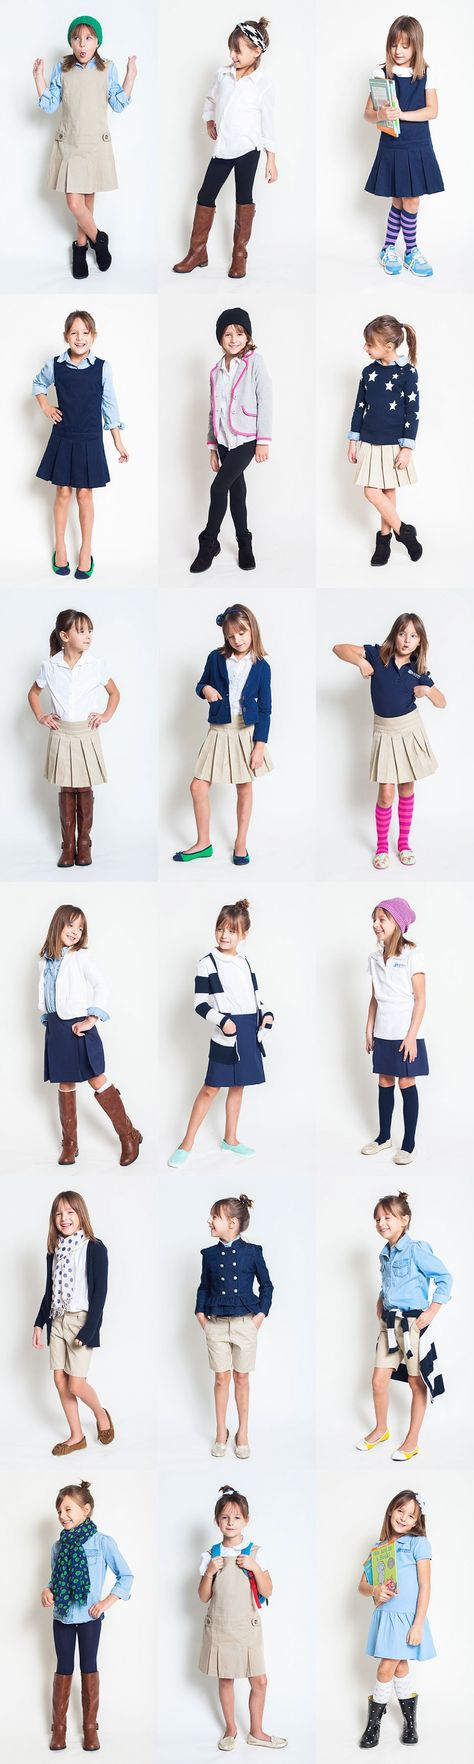 School Uniform Style Project! dress up or down, both works!